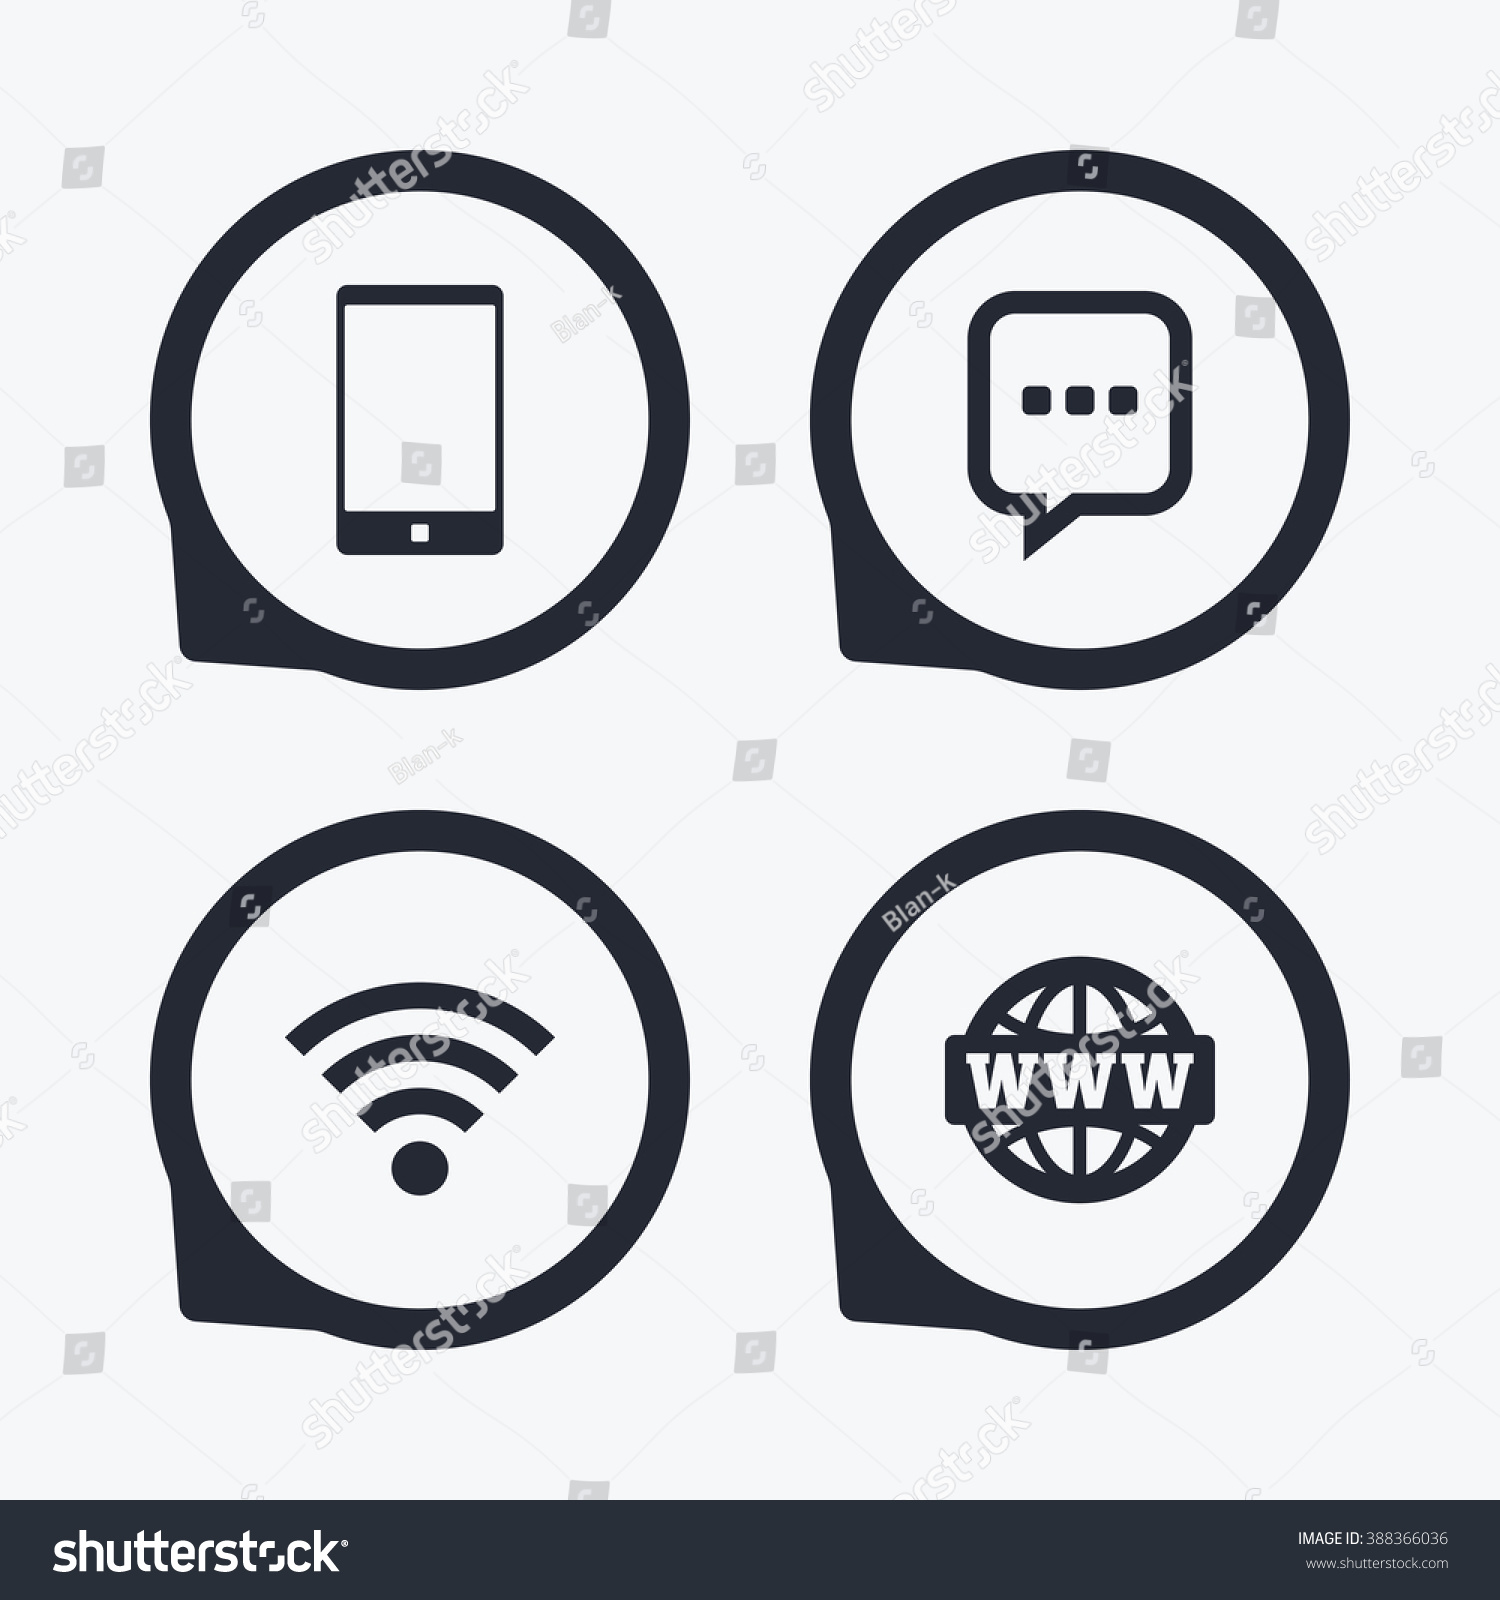 Communication Icons Smartphone Chat Speech Bubble Stock Illustration